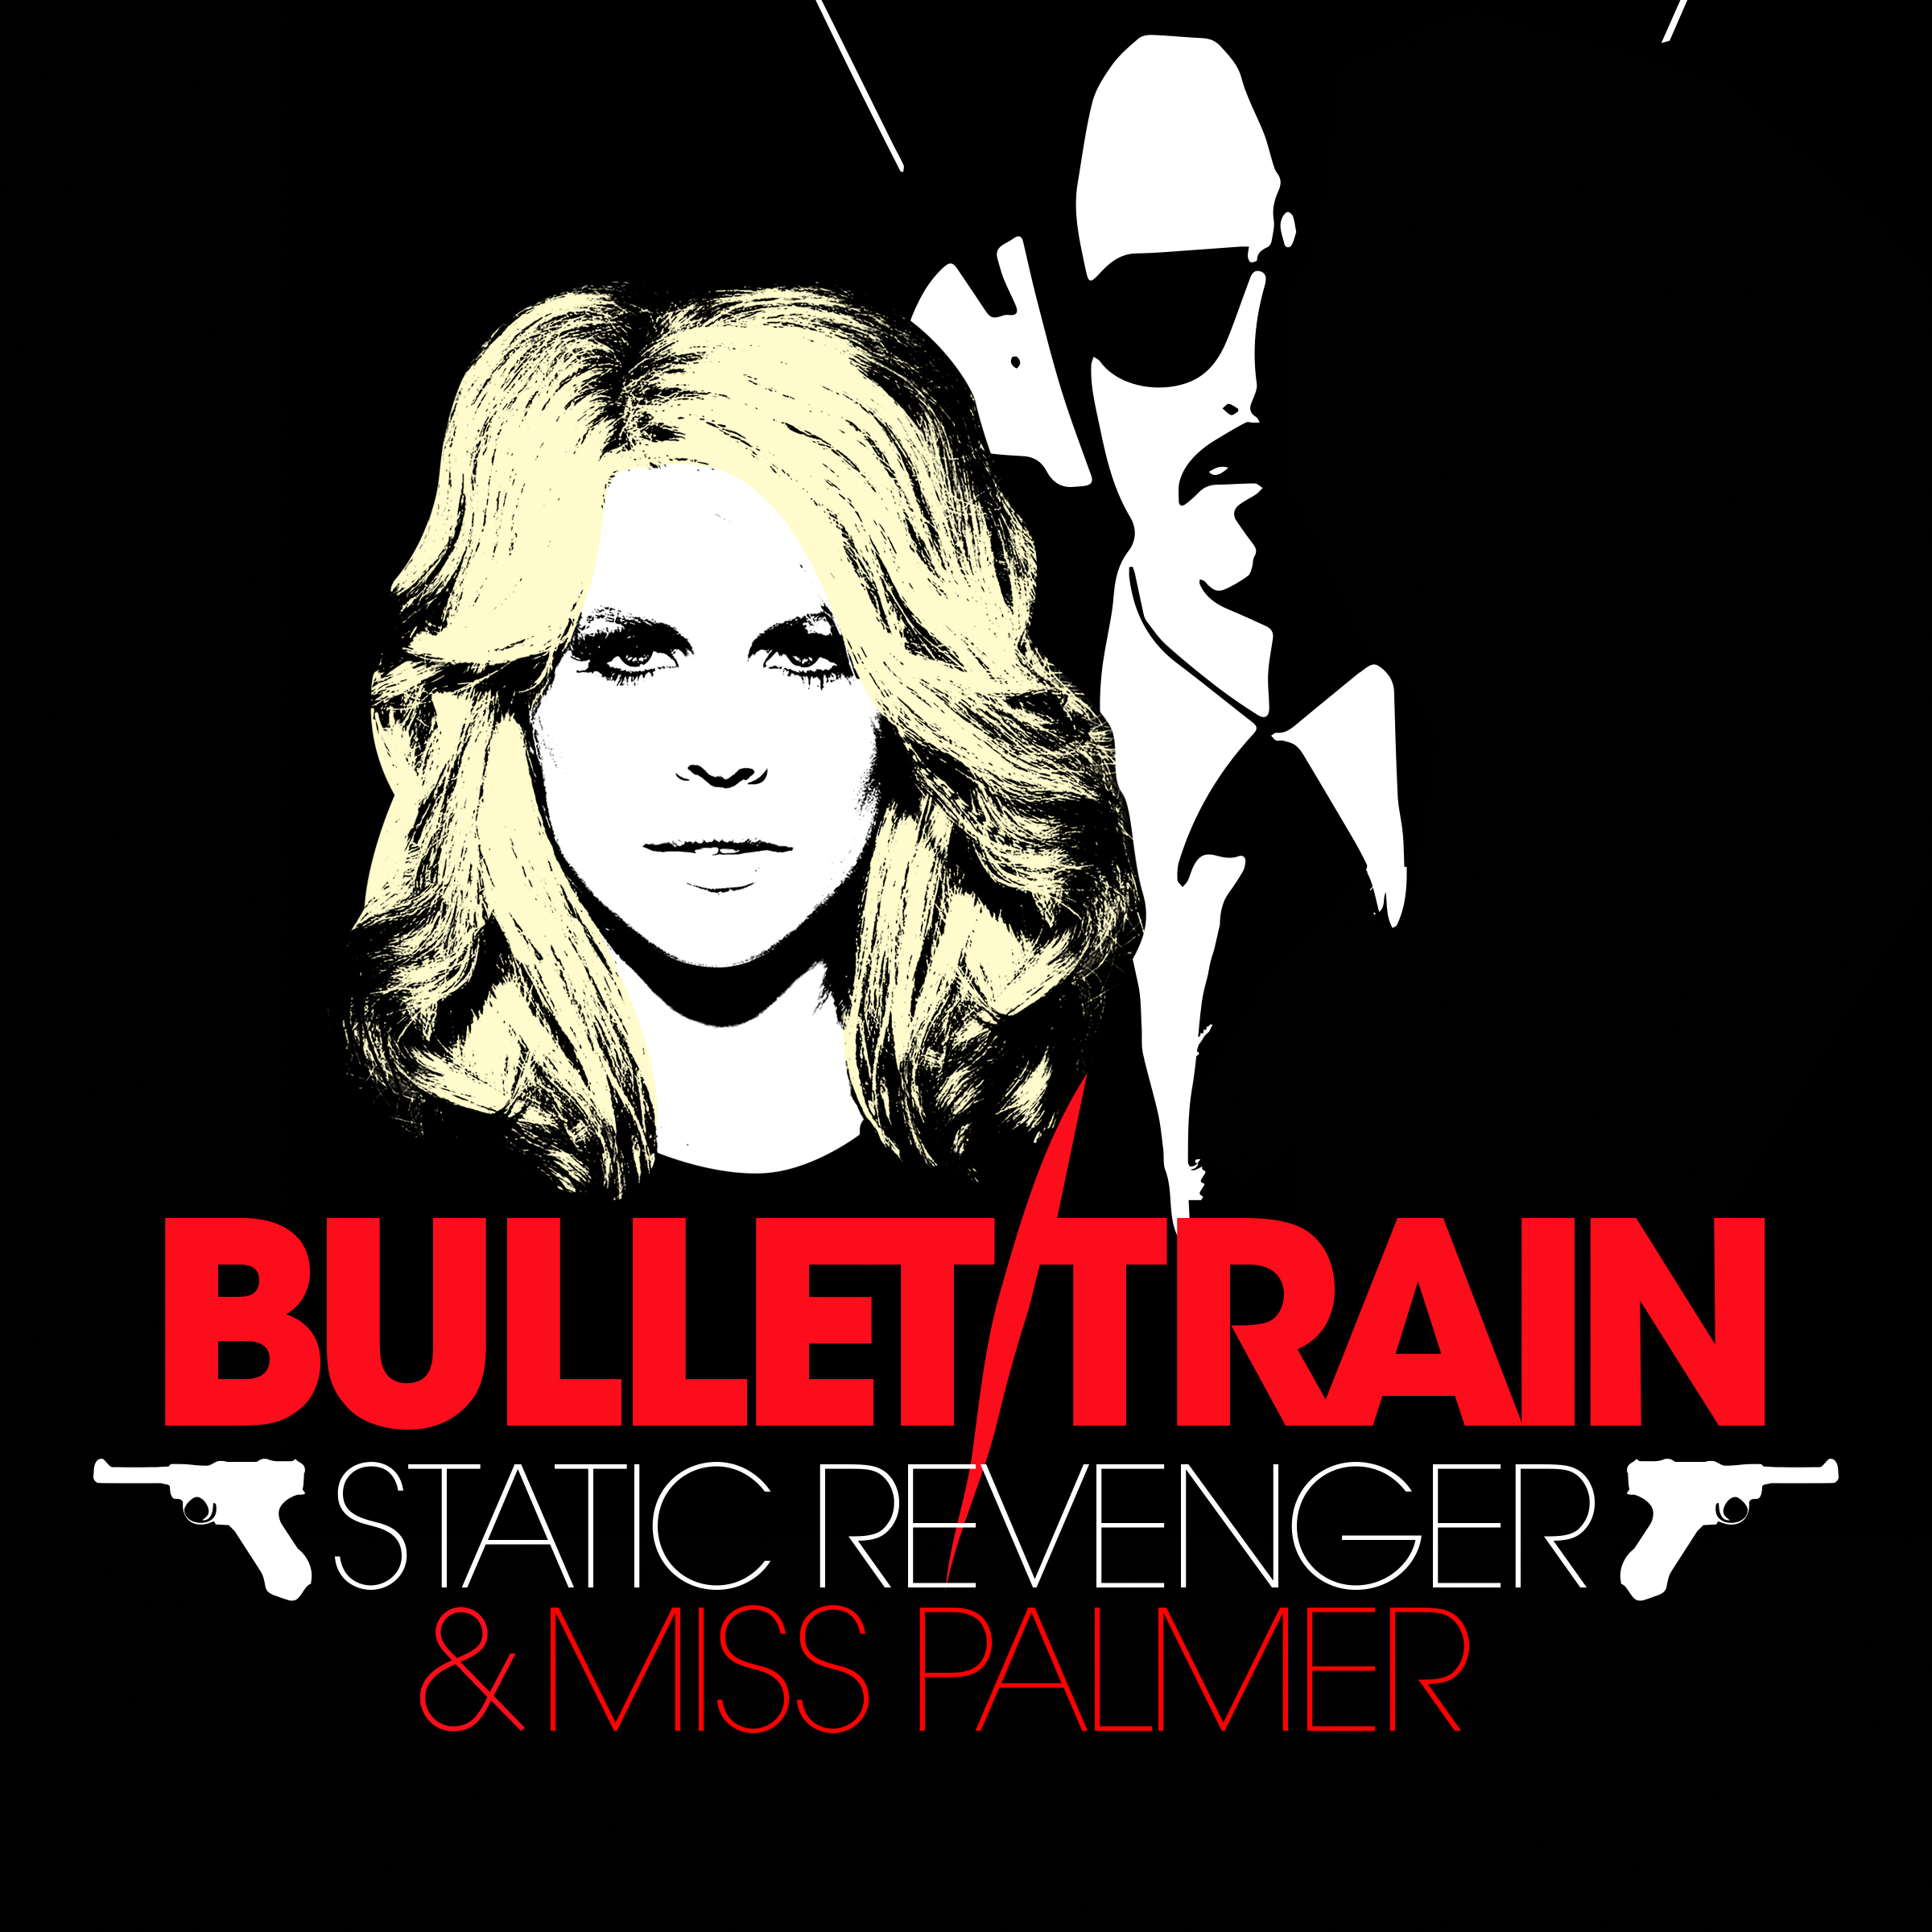 static_revenger_BULLET_TRAIN_packshot2